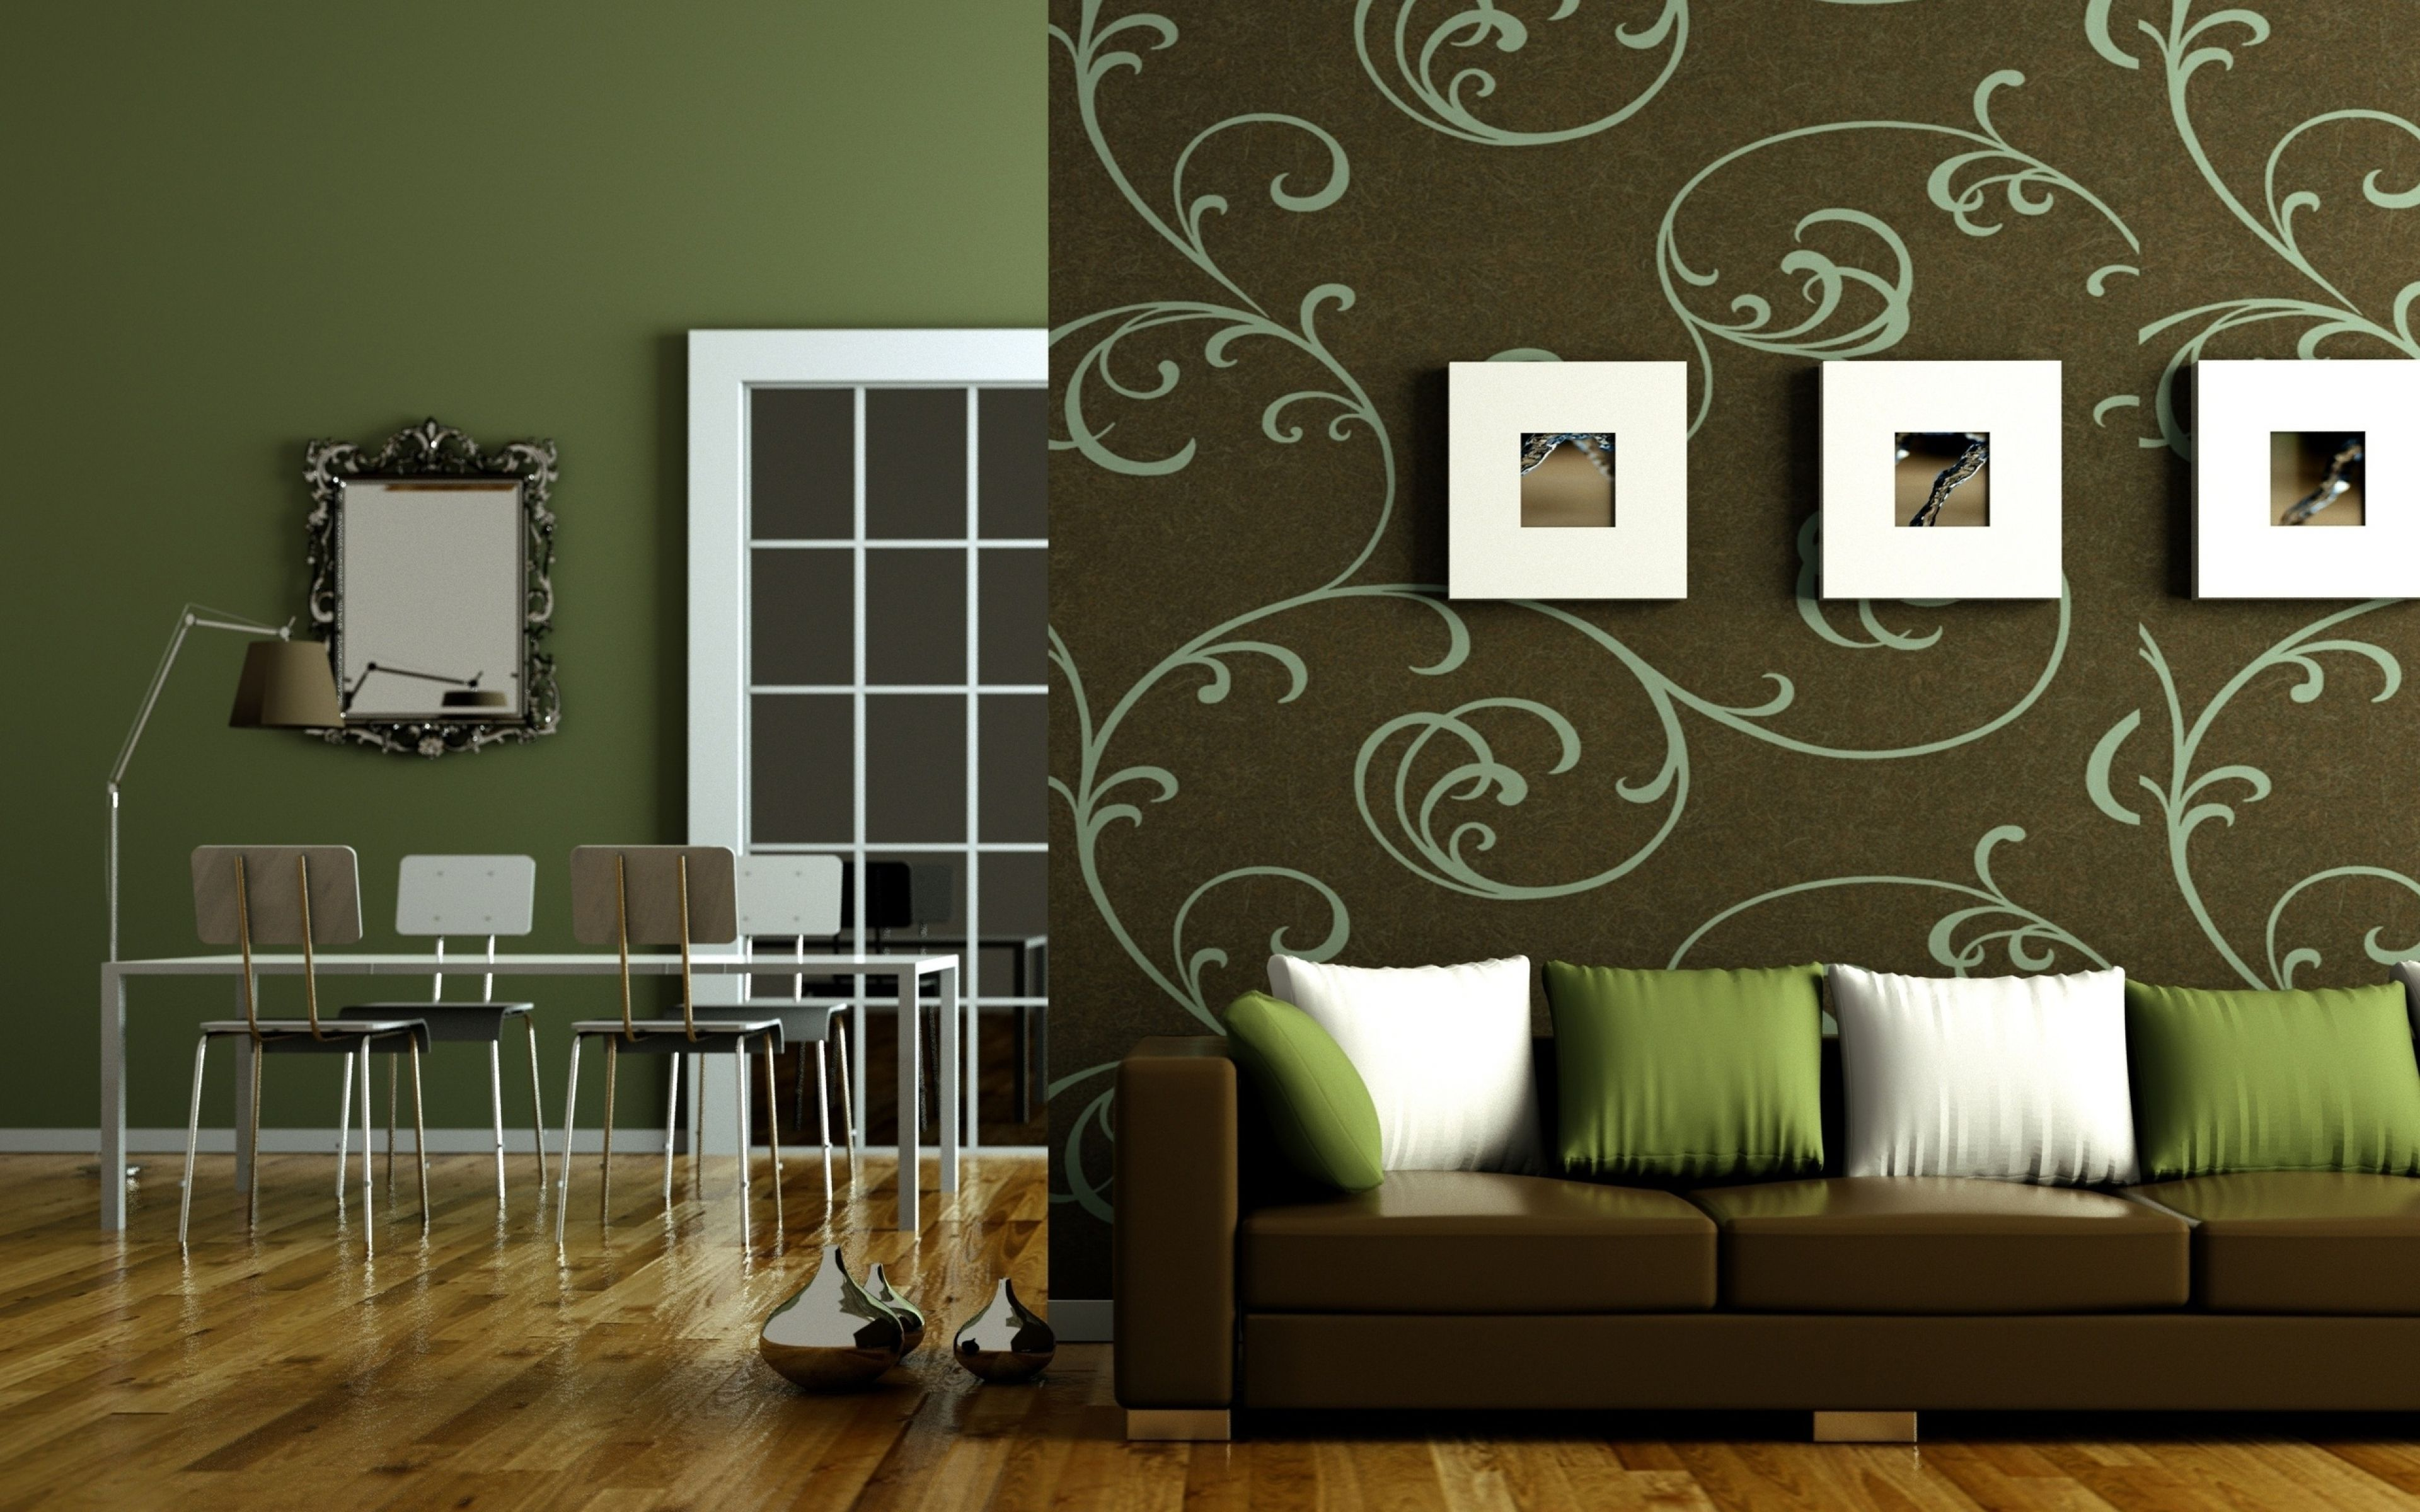 Best Painting Ideas For Living Room Interior Decoration As Wallpaper Background On Dark Green Wallpaper Interior Design Living Room Green Living Room Interior